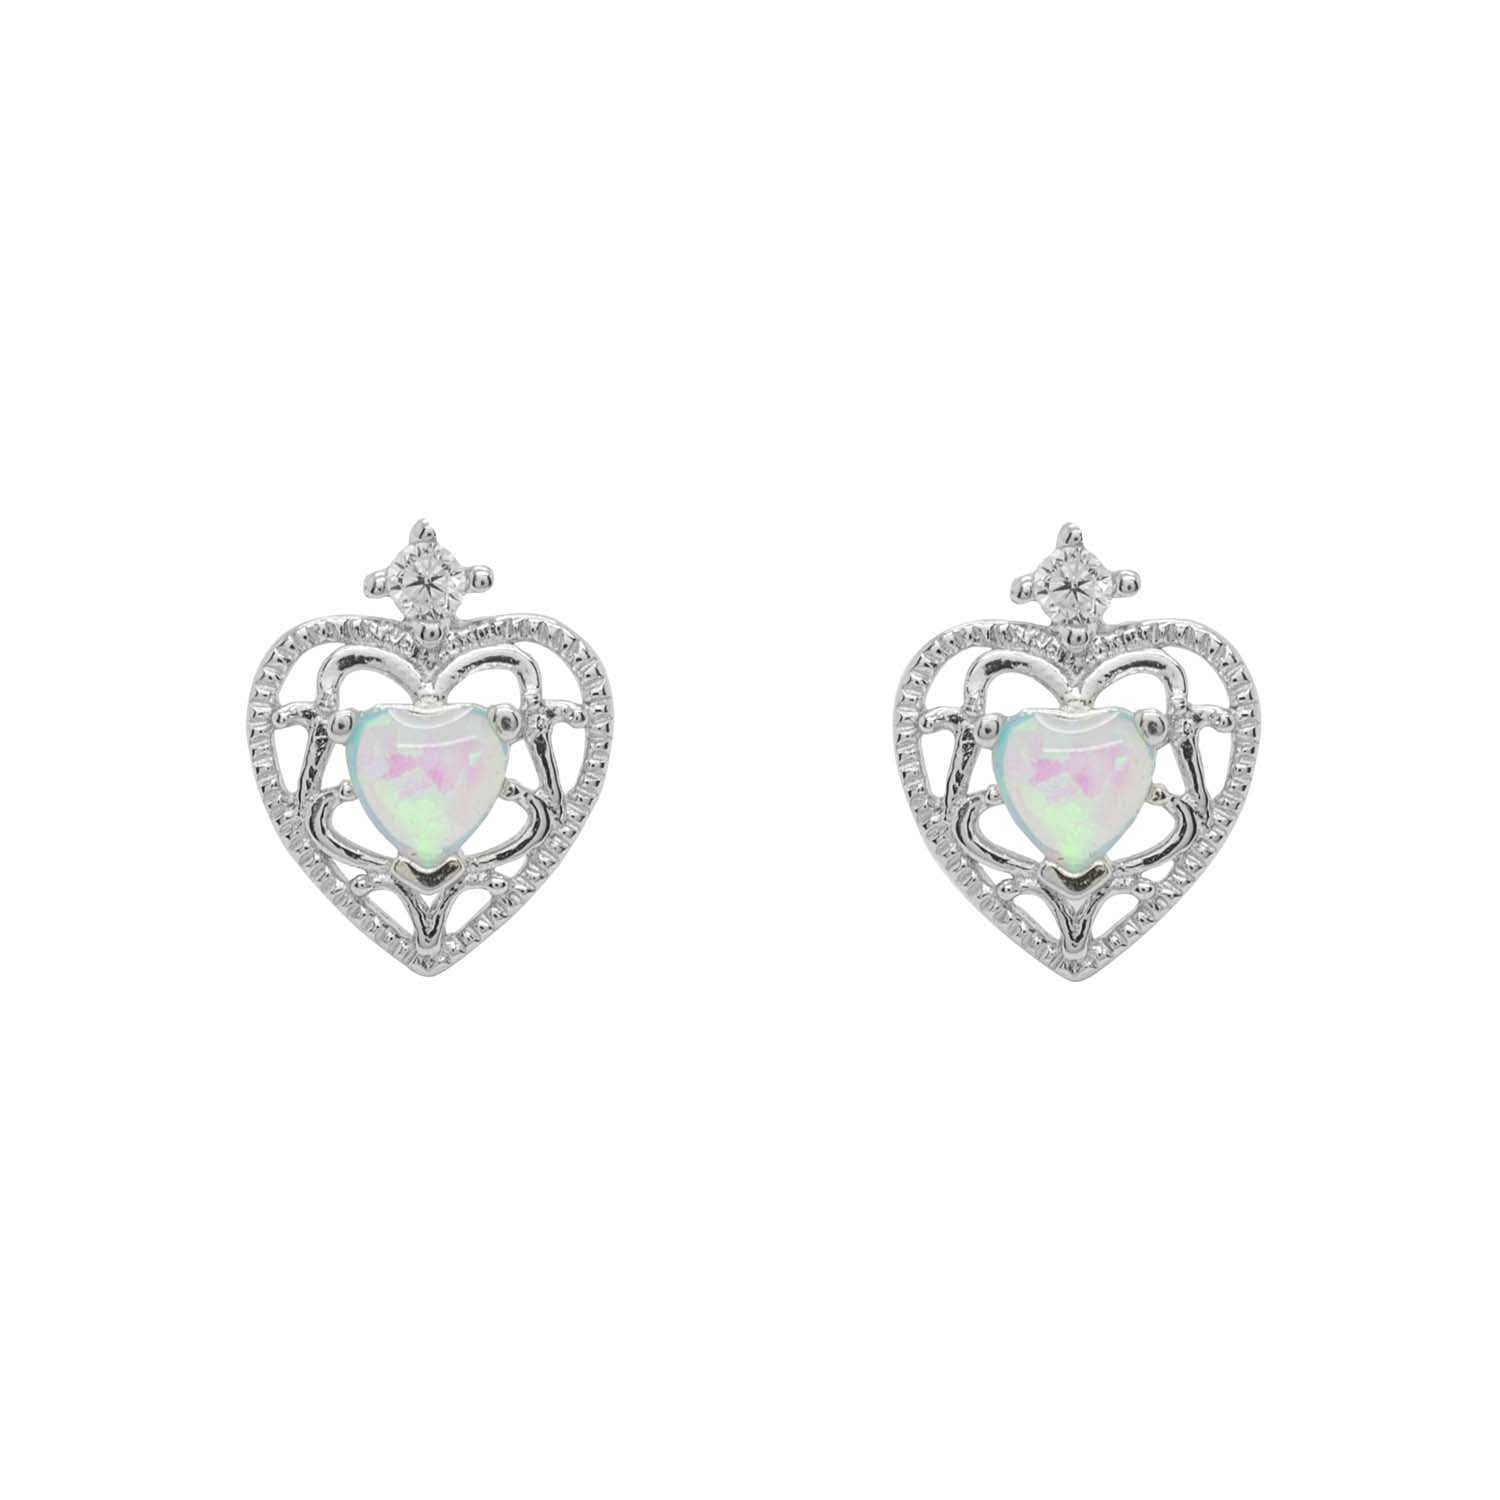 Ornate opal heart earrings